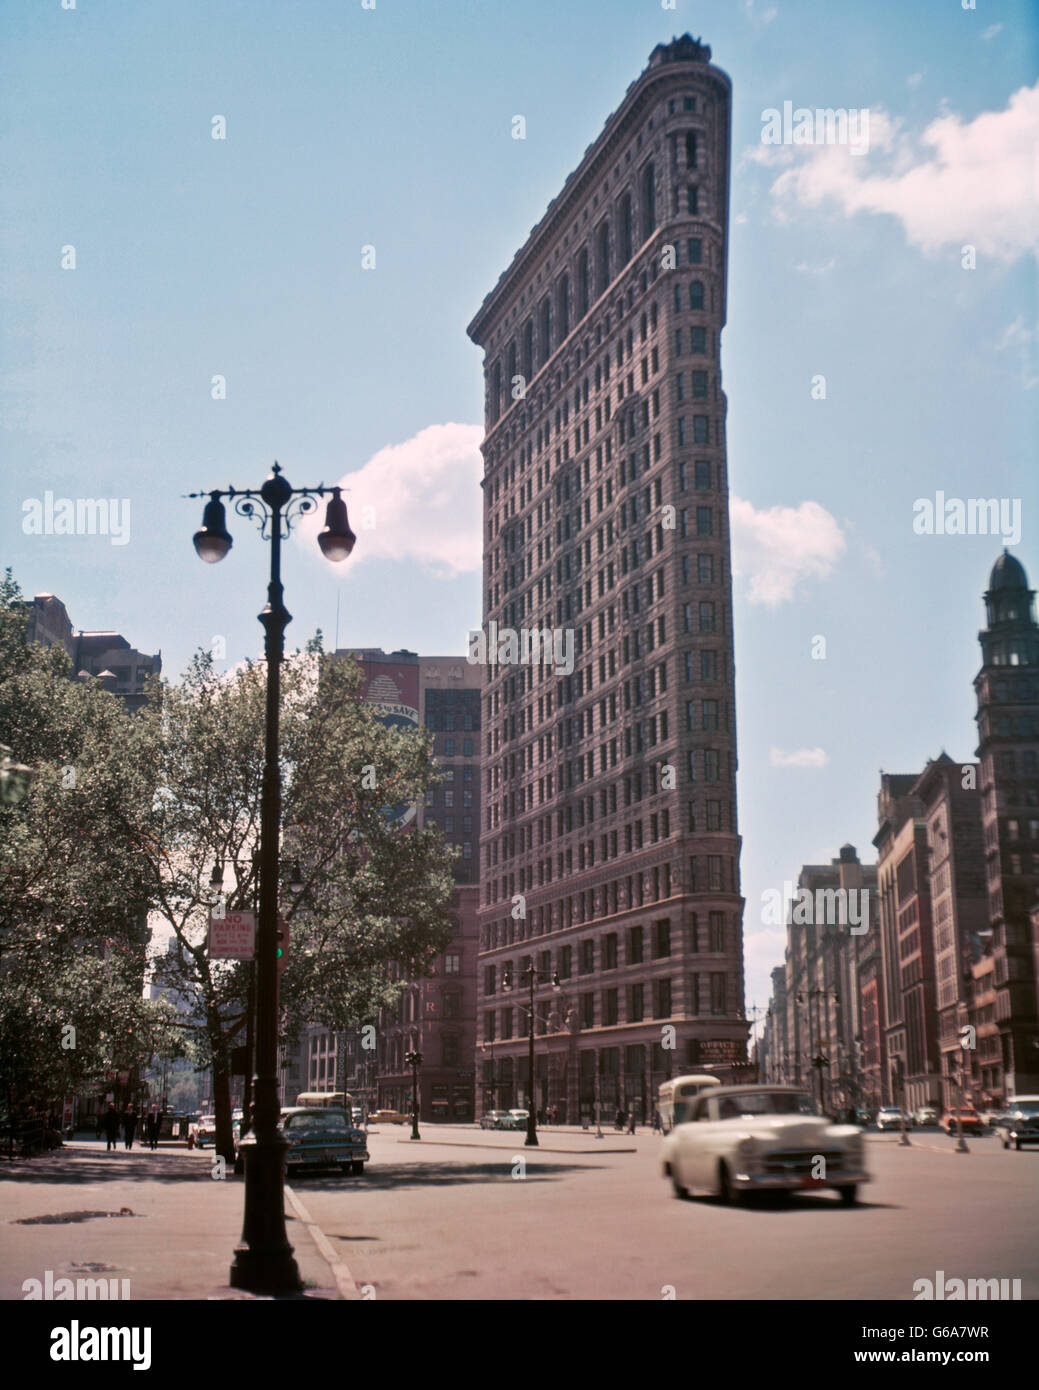 1950s THE FLATIRON BUILDING BUILT IN 1902 23rd STREET AND FIFTH AVENUE ONE OF FIRST SKYSCRAPERS IN MANHATTAN NYC - Stock Image